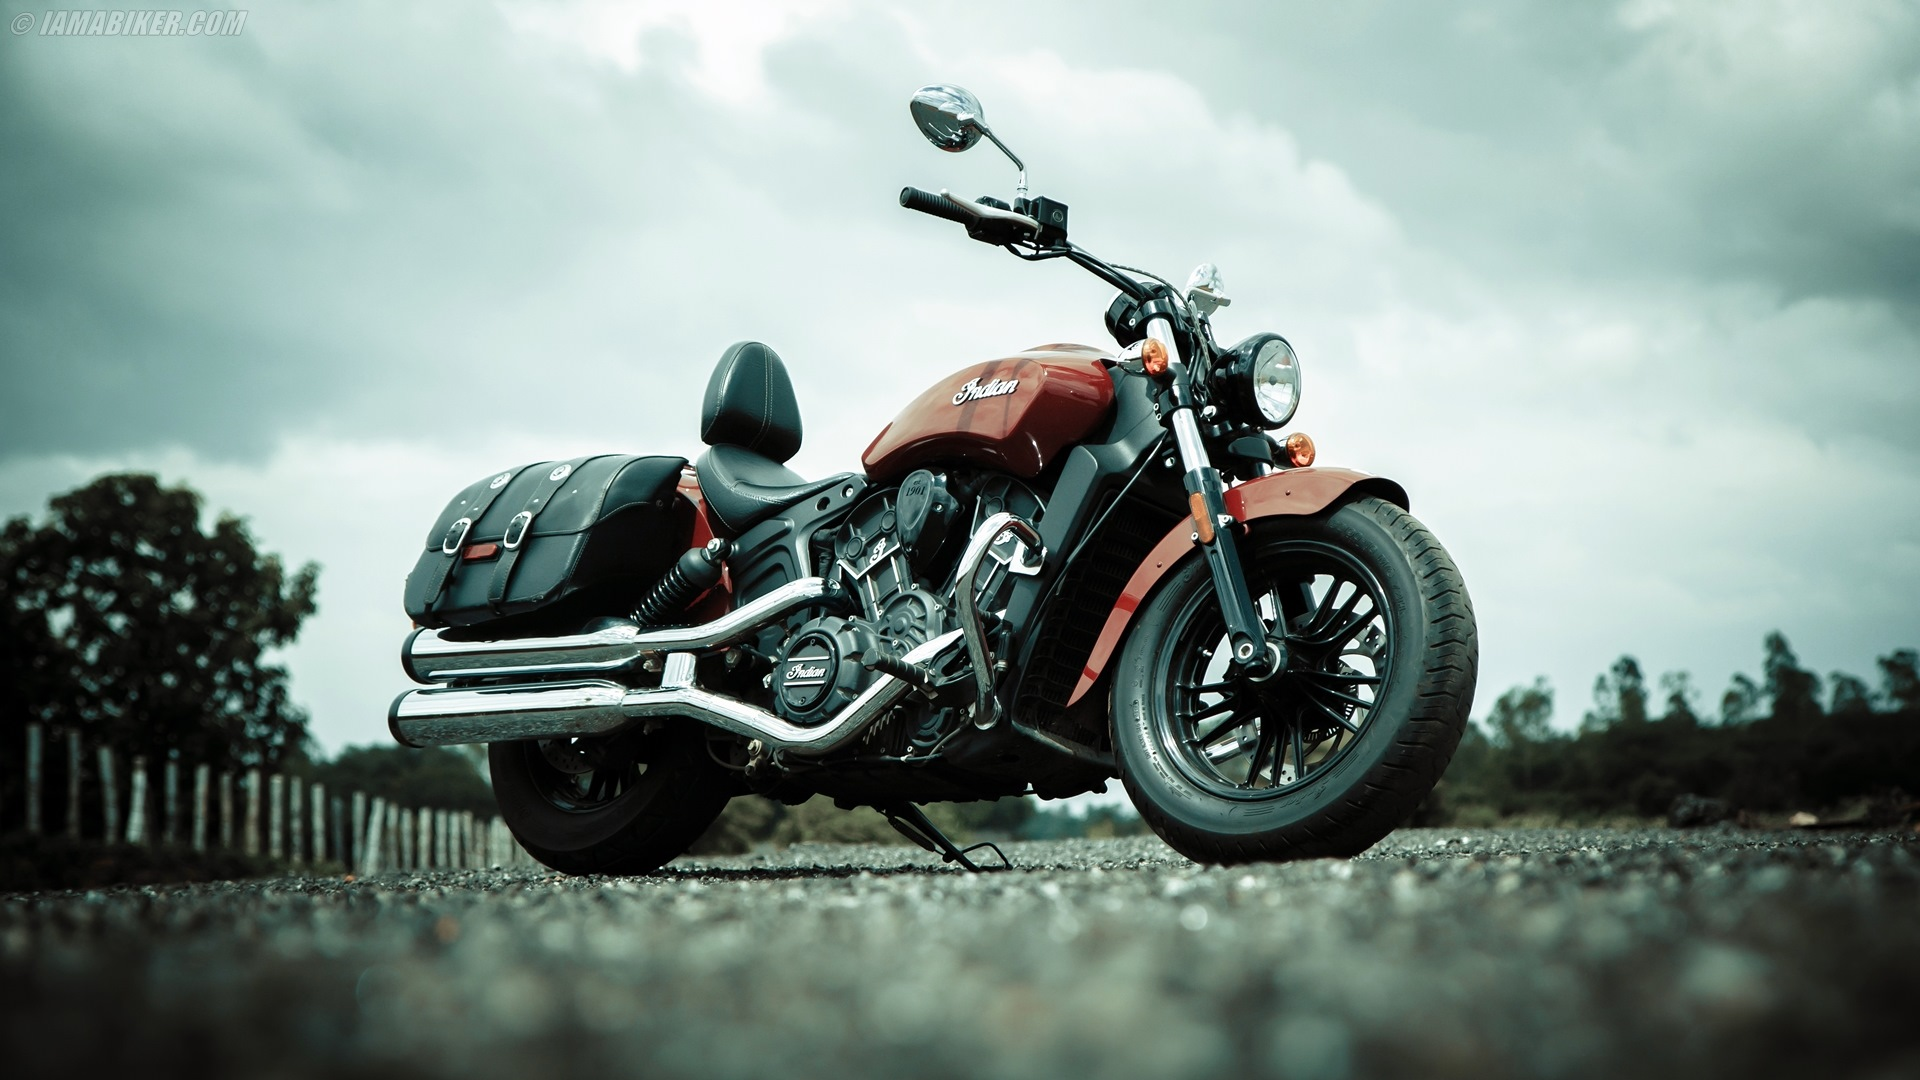 Indian scout sixty hd wallpapers 1 iamabiker - Indian scout bike hd wallpaper ...